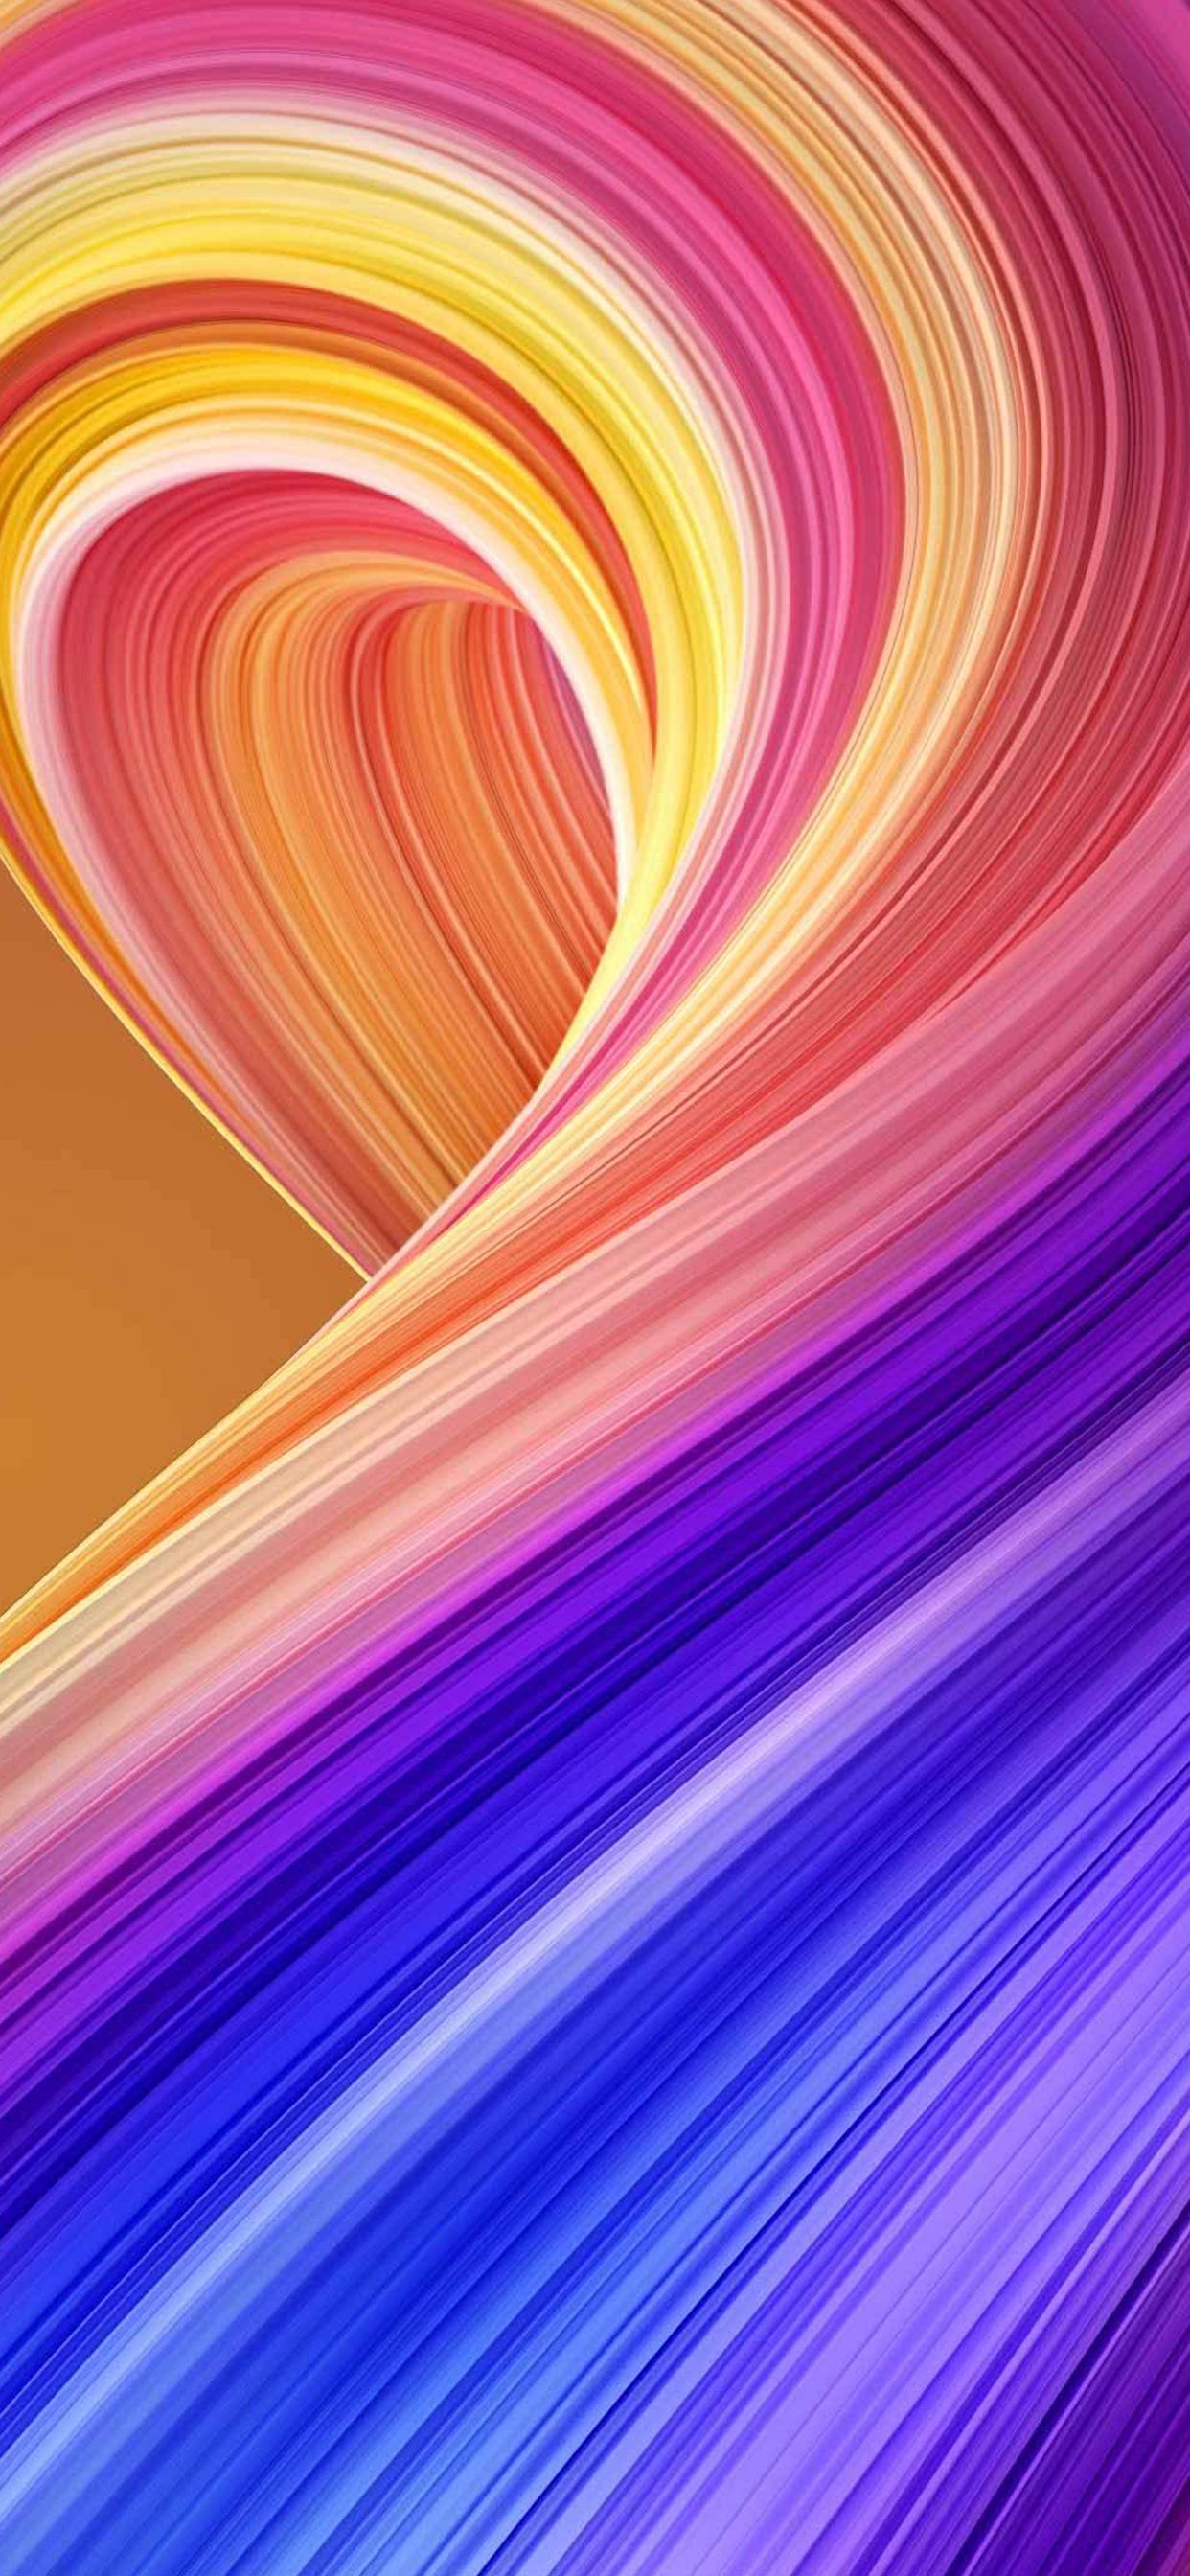 Iphone 10 3d Wallpaper